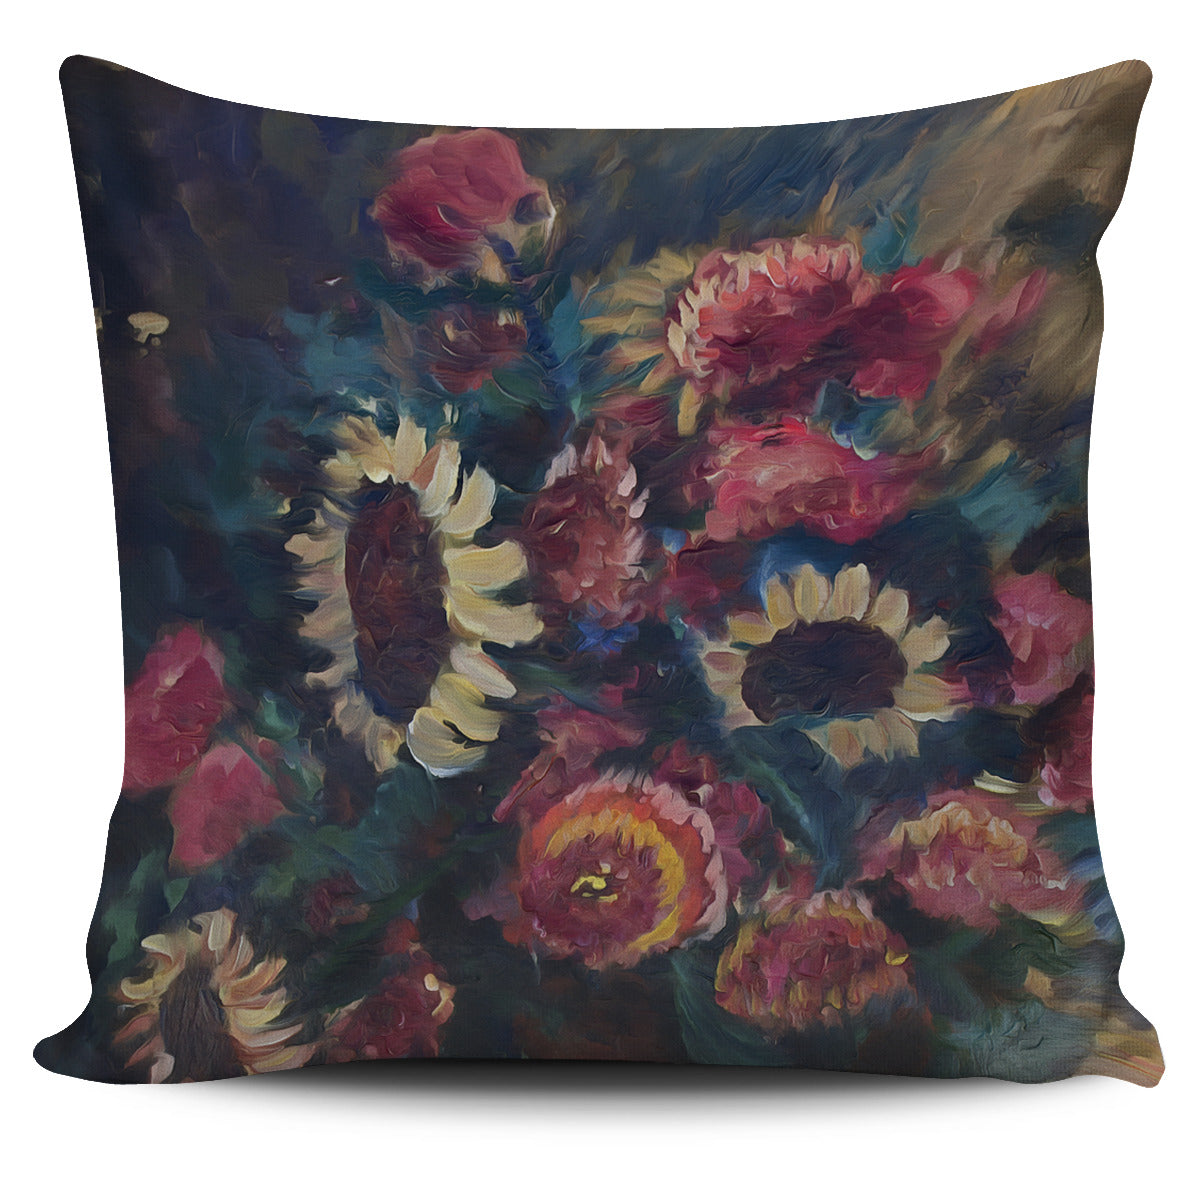 The Sunflower Bouquet Fine Art Pillow from Original Painting - Fashion Factorys